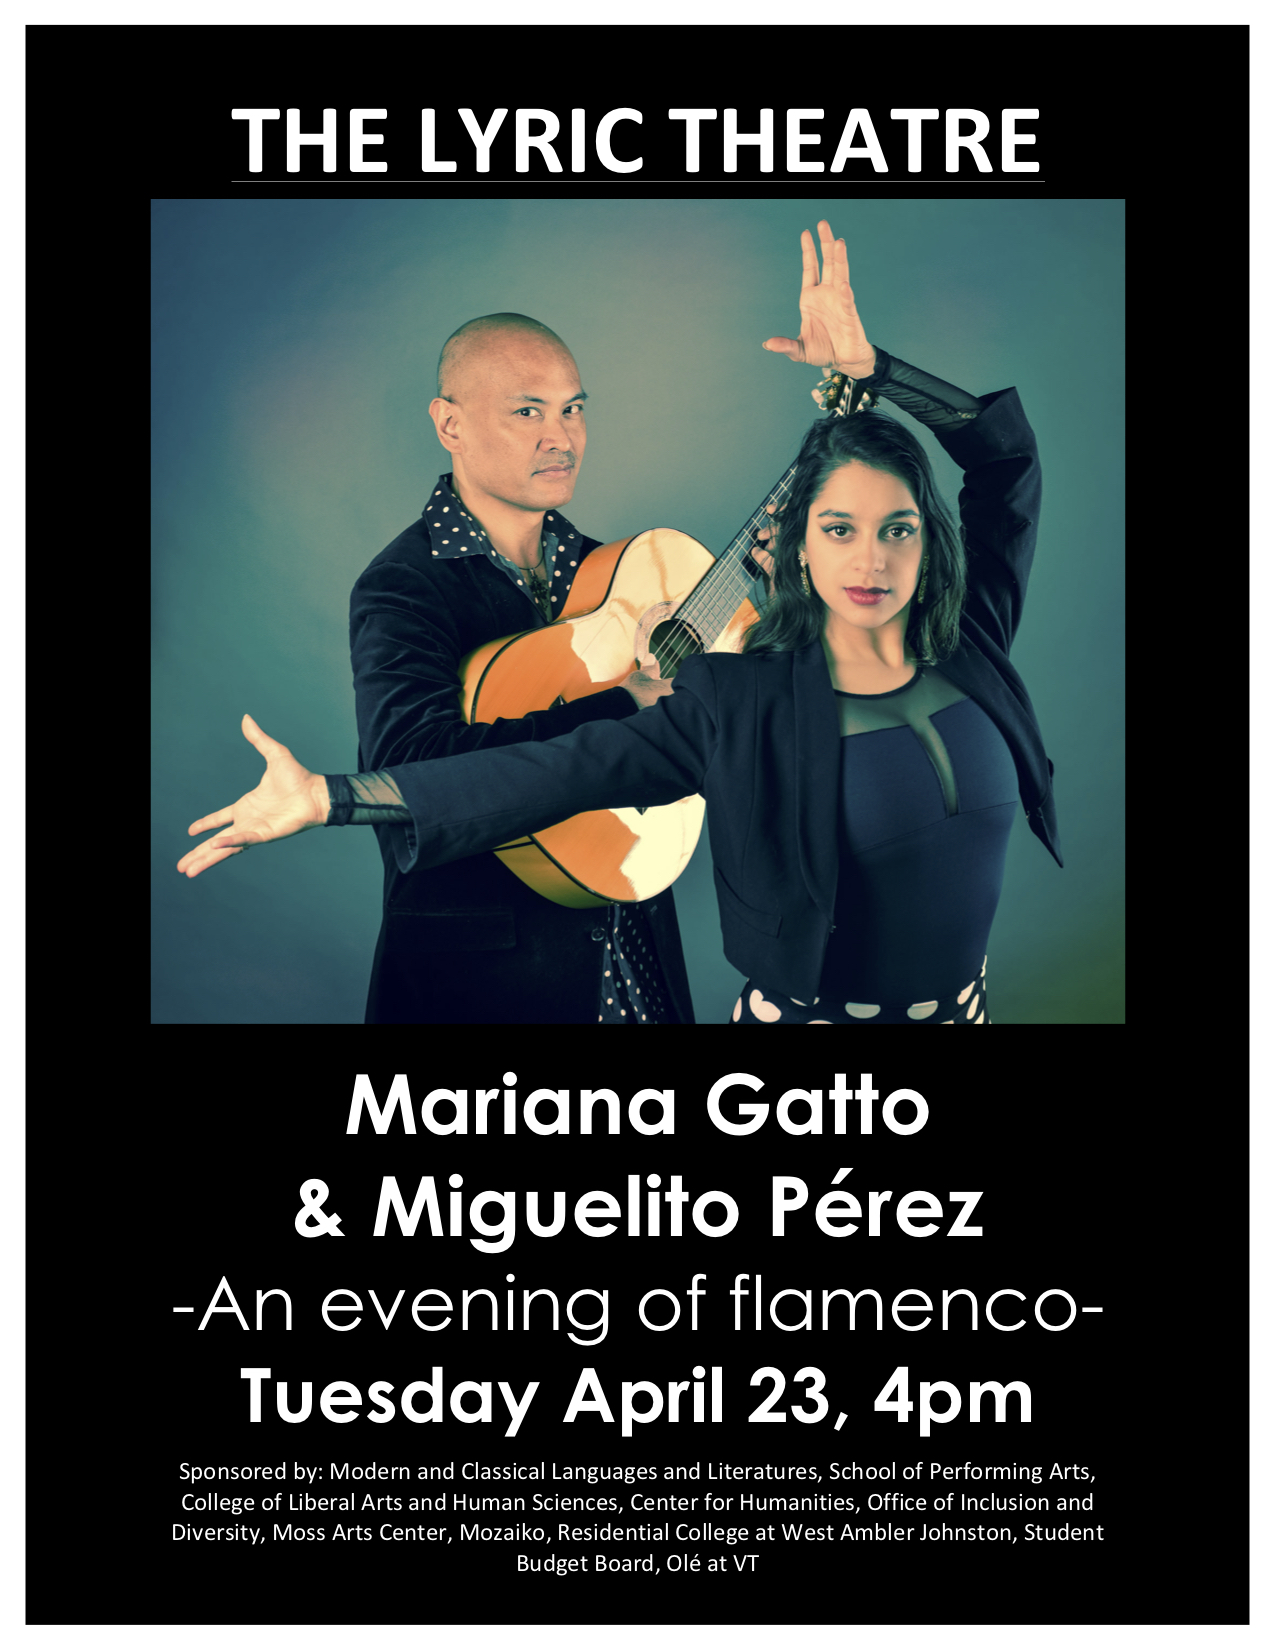 Flamenco Arte Y Ole Flamenco Dance With Mariana Gatto And Miguelito Perez The Lyric